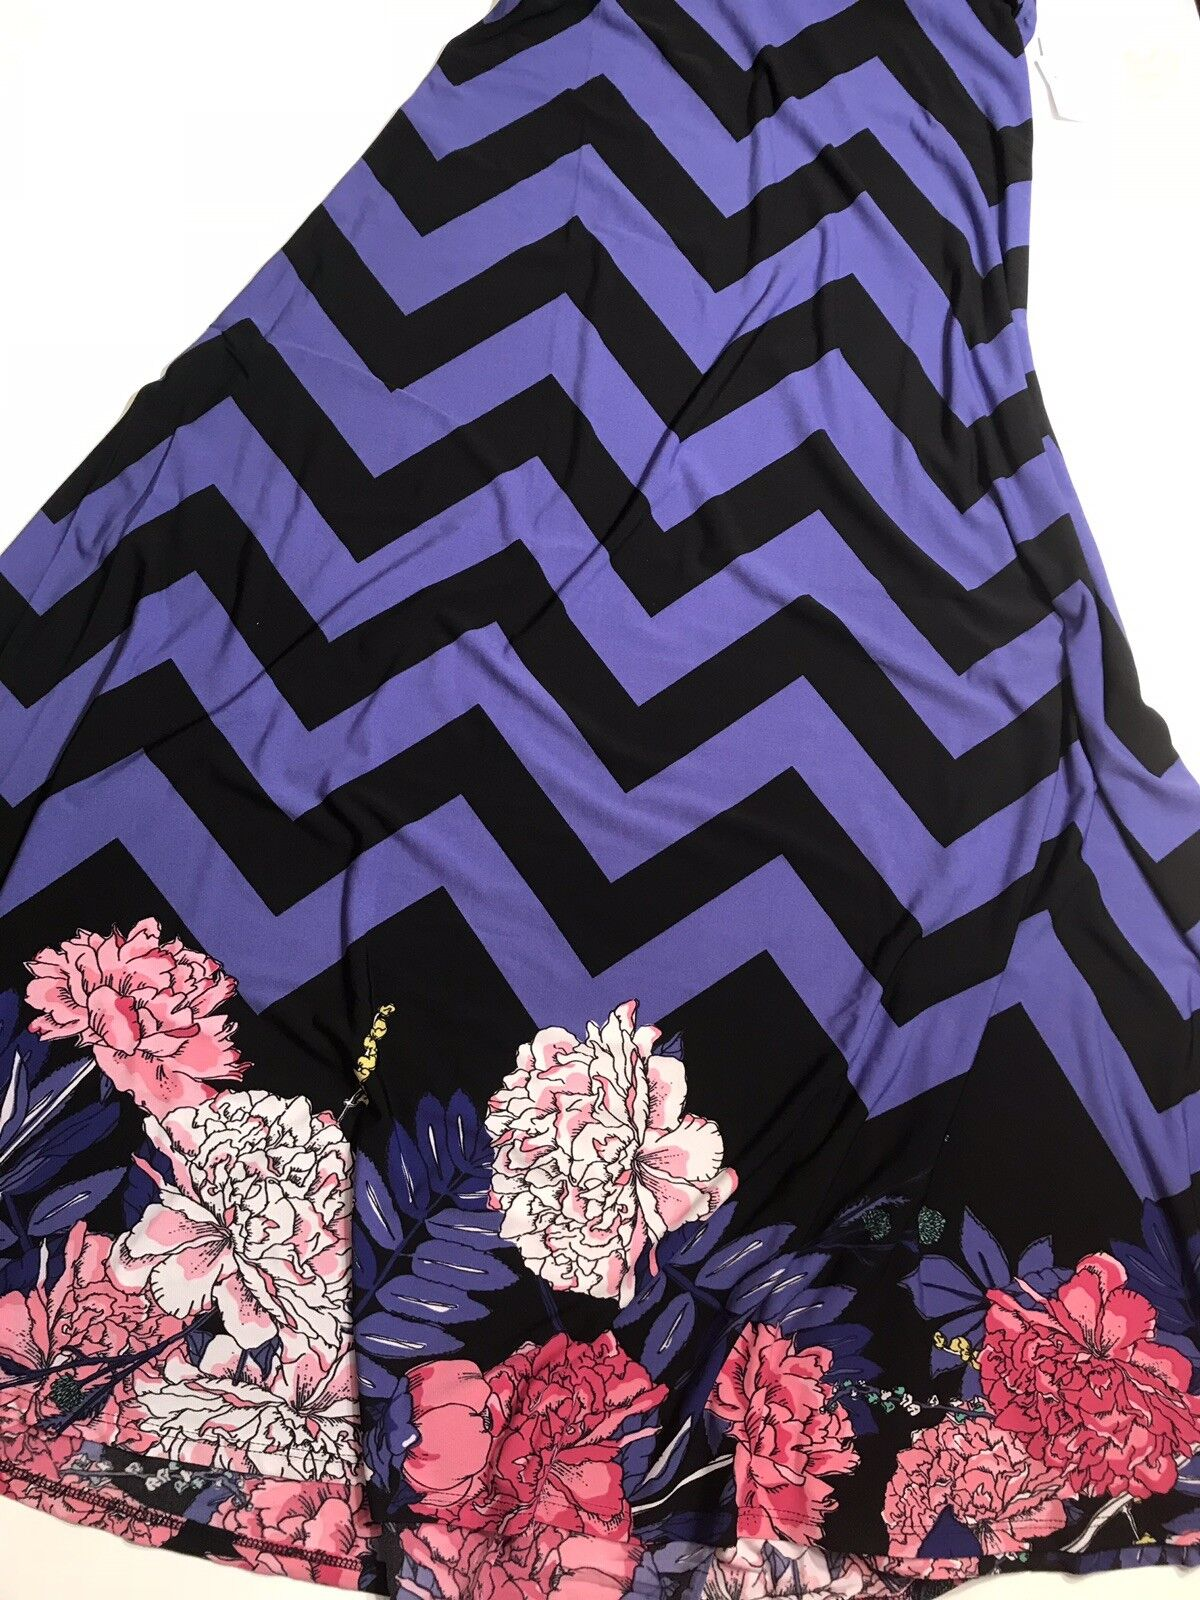 Lularoe Floral Maxi Skirt Dress XXS Chevron Stripe Purple bluee Dipped pink Peony